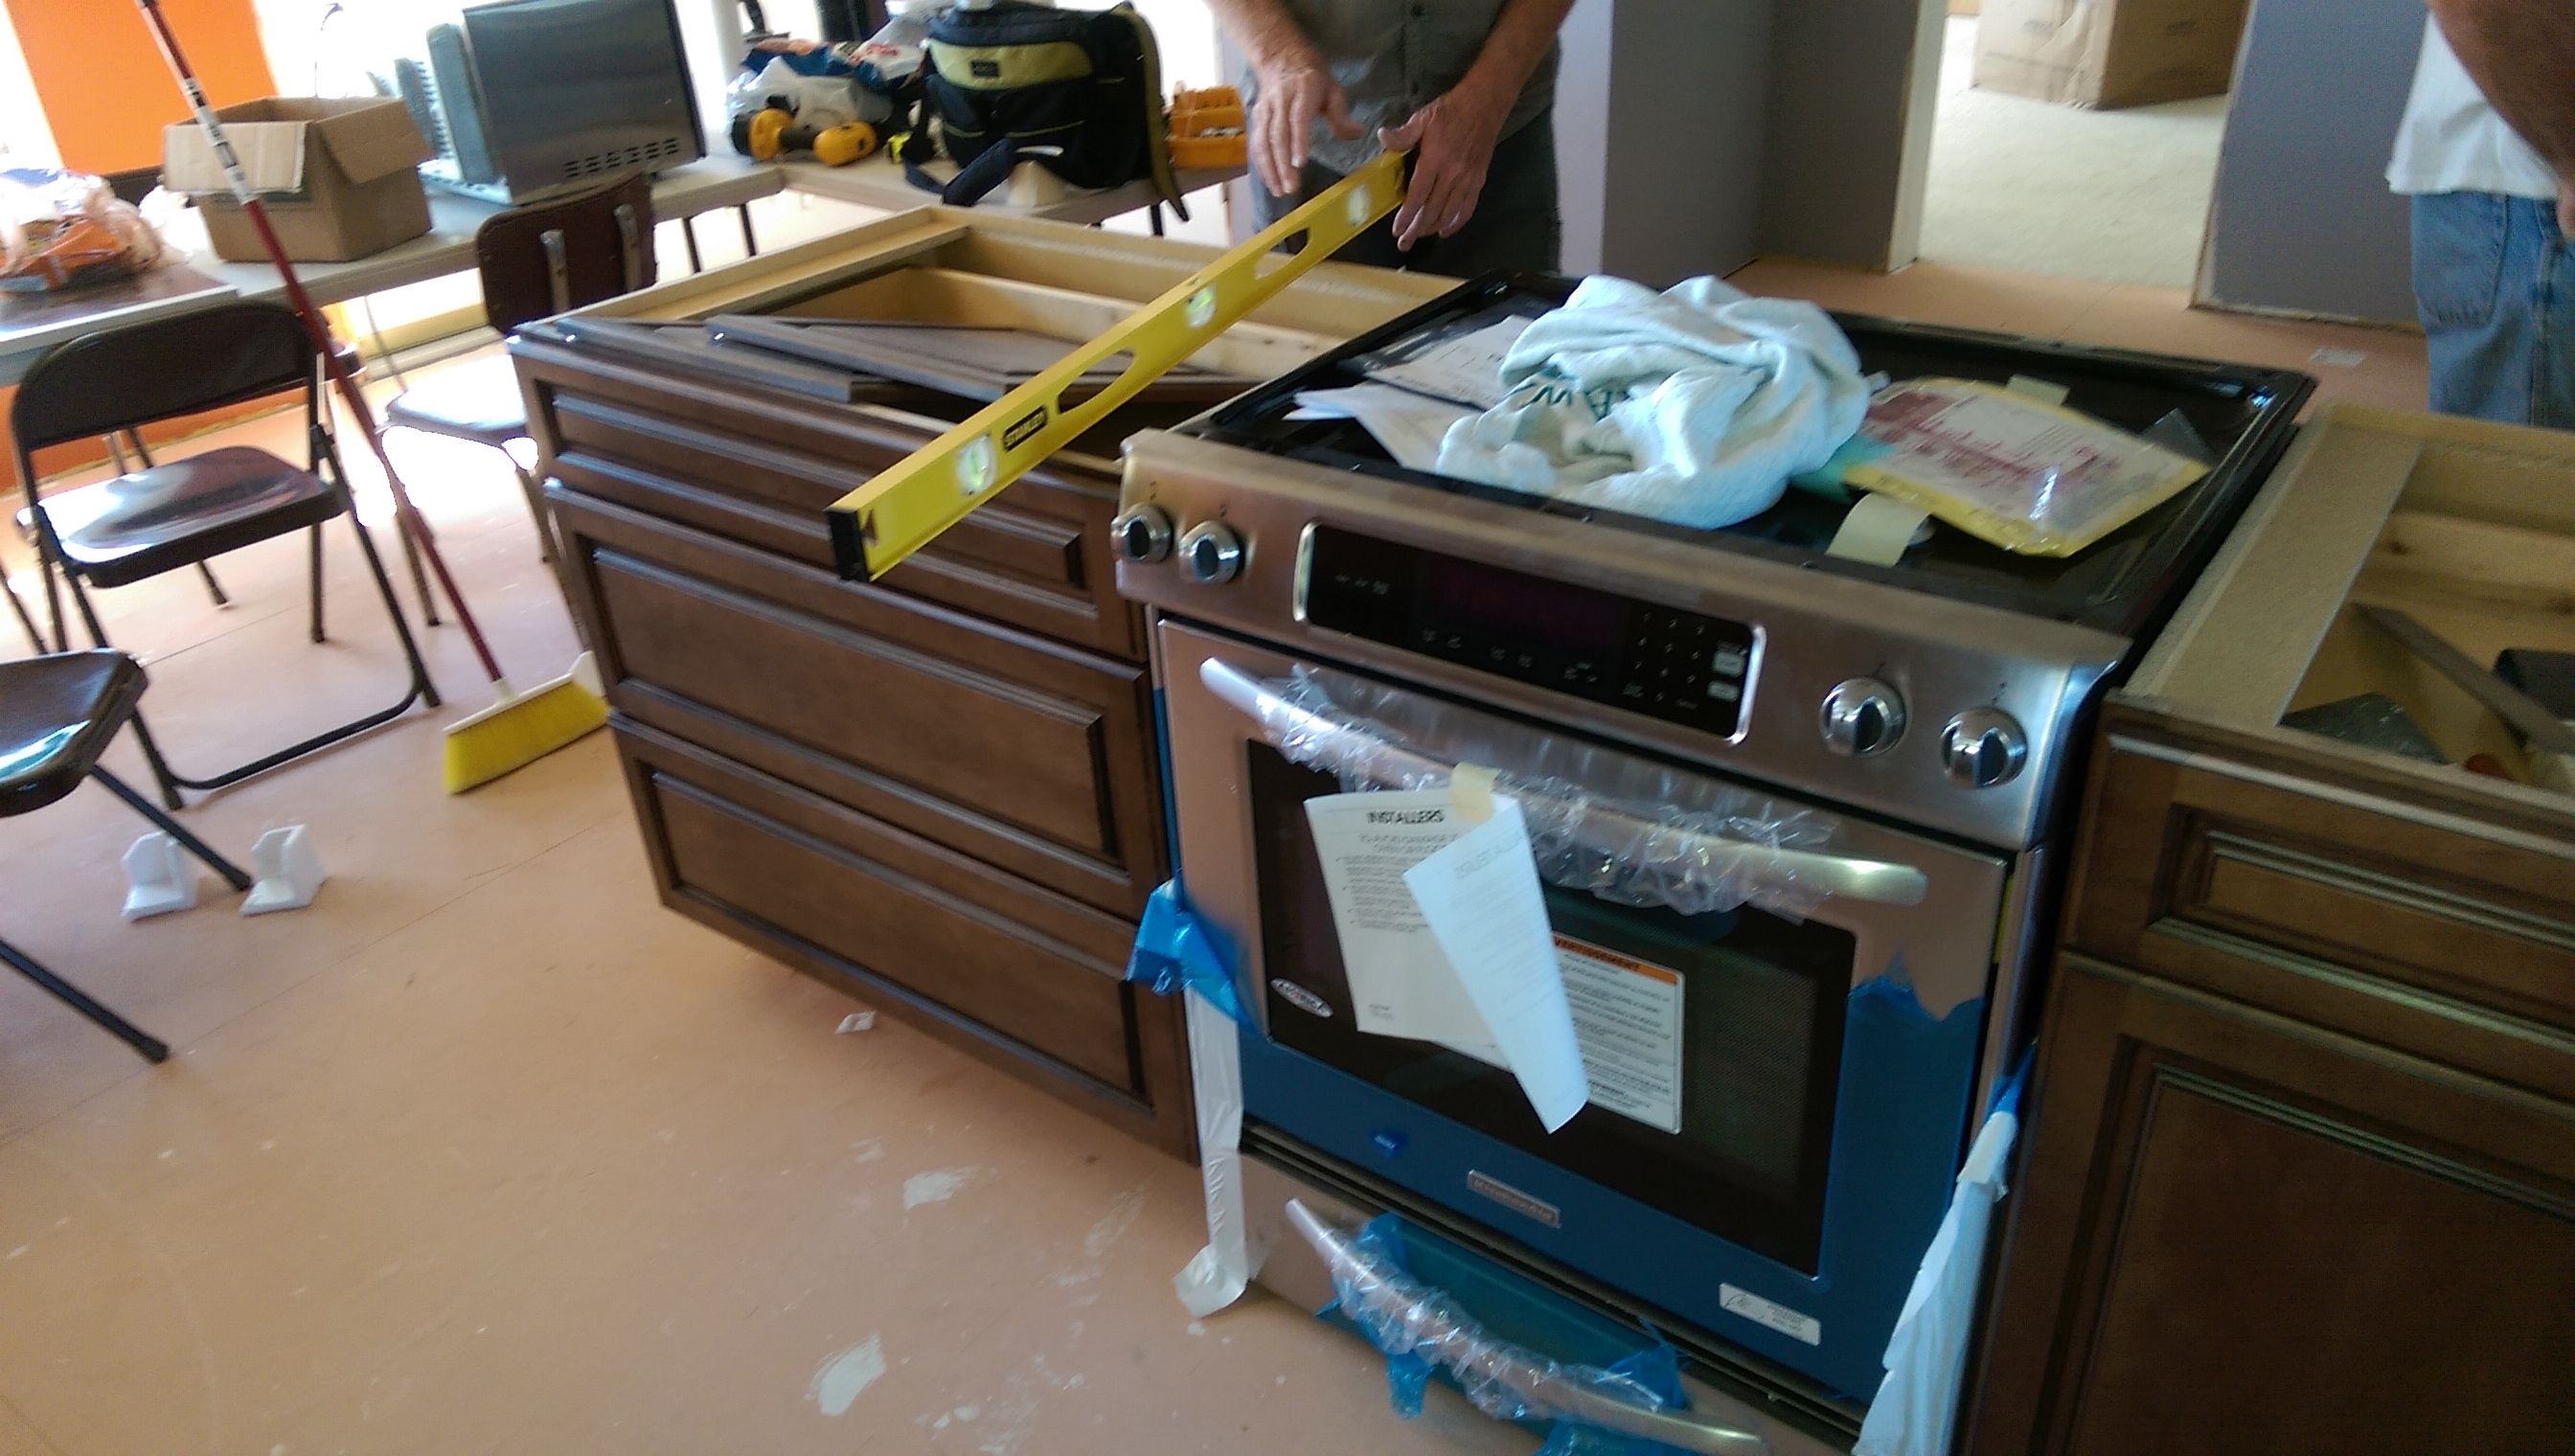 Dry fitting the gas stove into the island kitchen